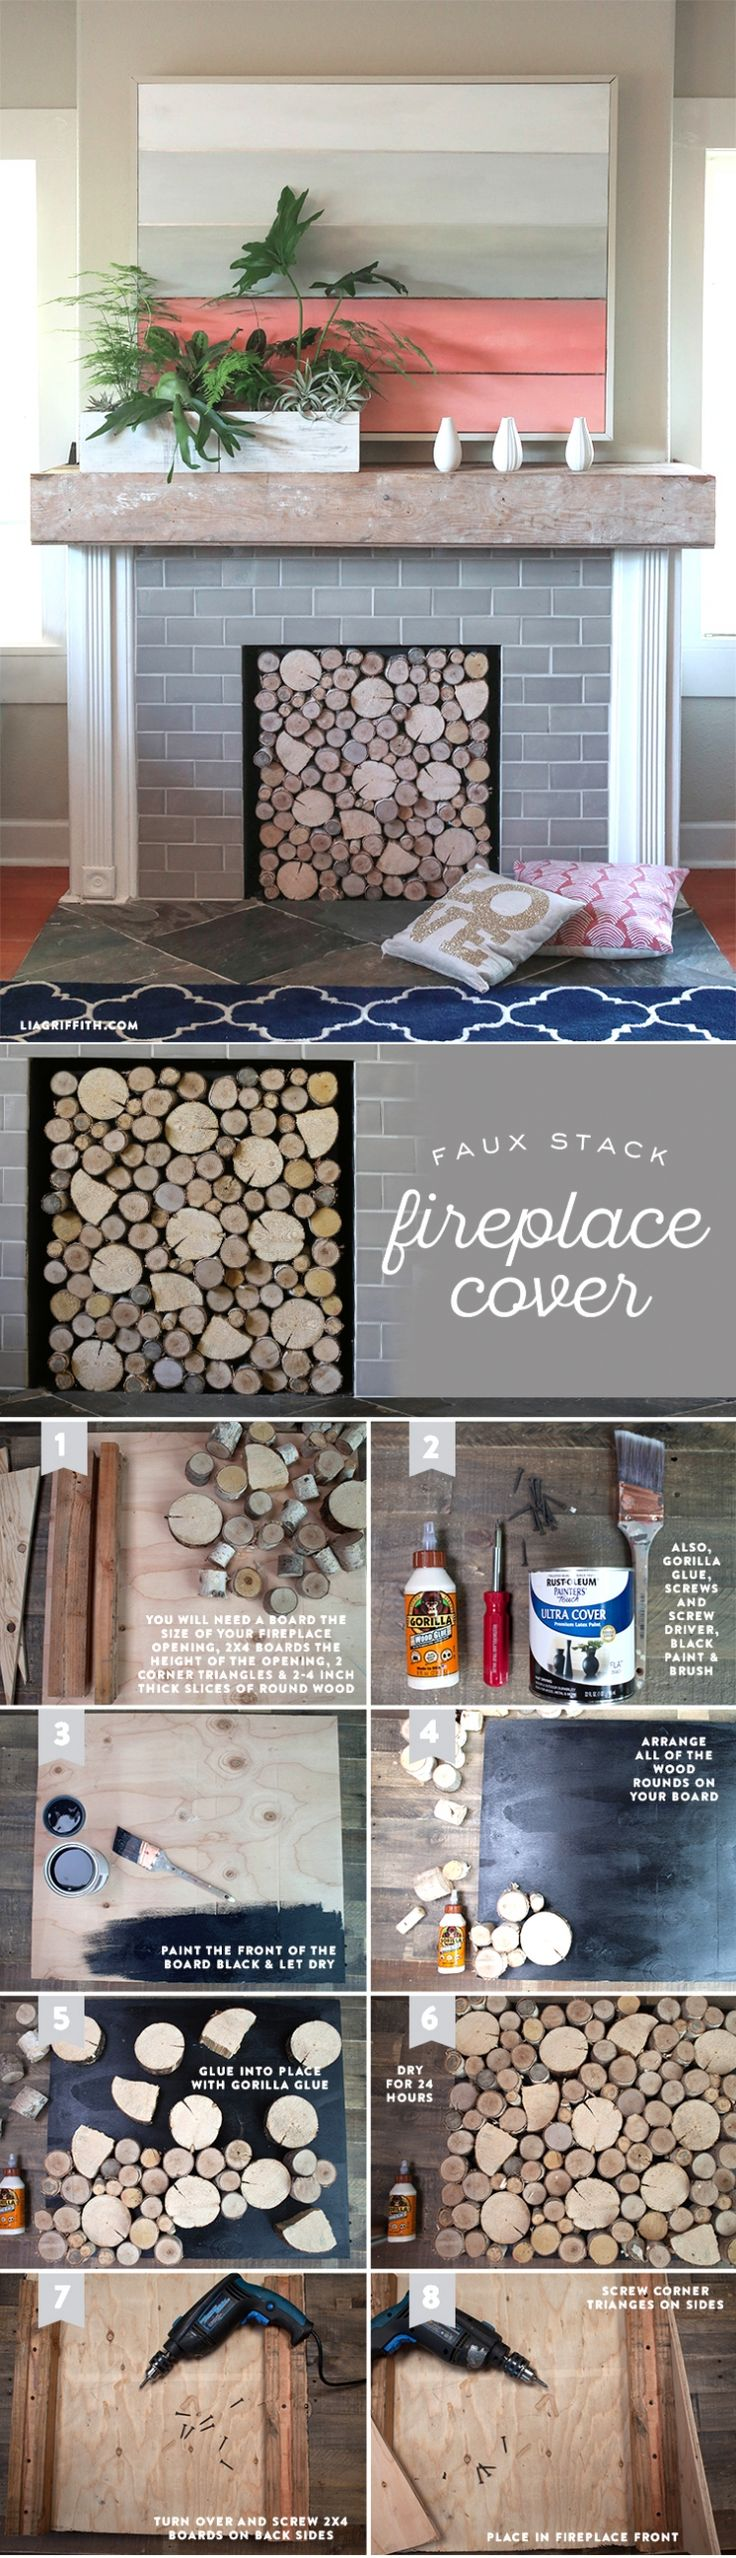 #diydecorating #interiors www.LiaGriffith.com